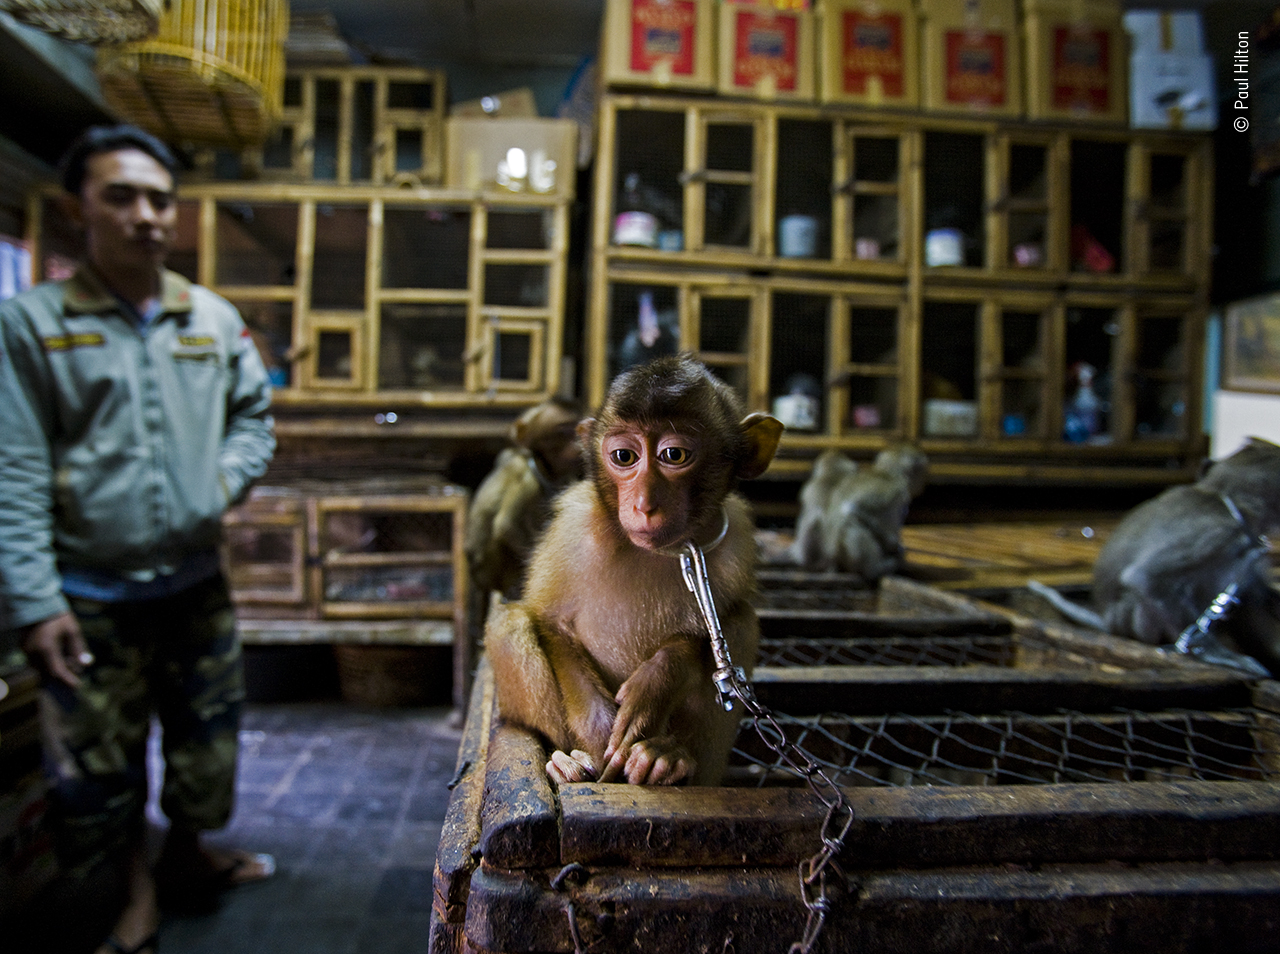 Unflinching Photojournalism from Wildlife Photographer of the Year 2020